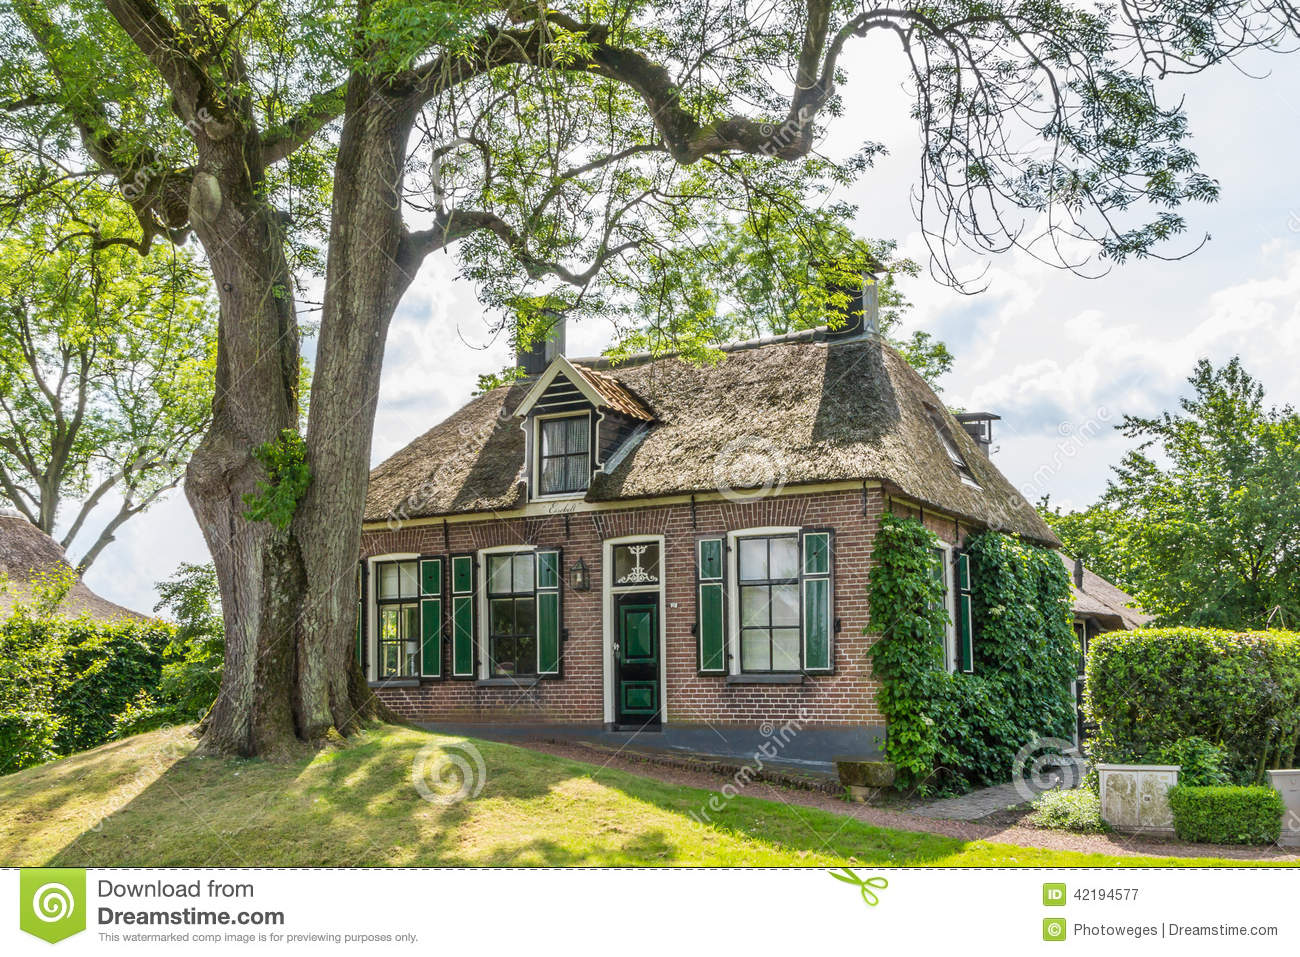 Cozy House Old Villa Holland Stock Photos Images & Pictures  99 Images